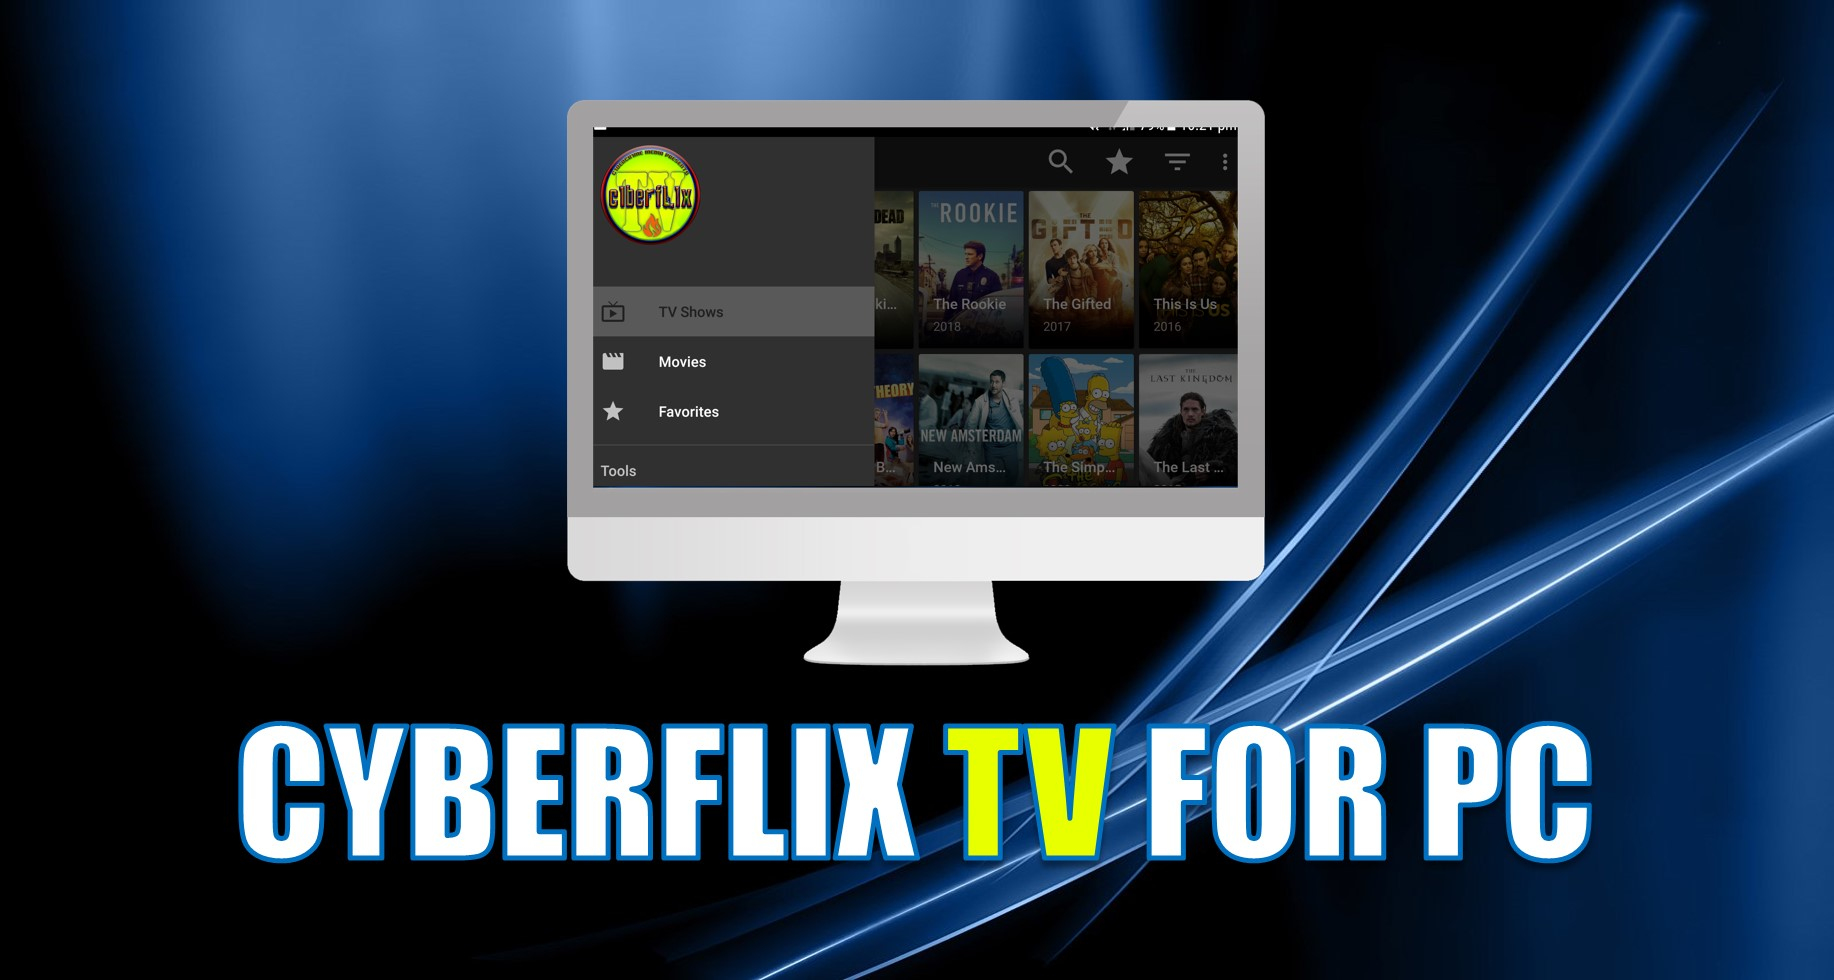 cyberflix tv for pc